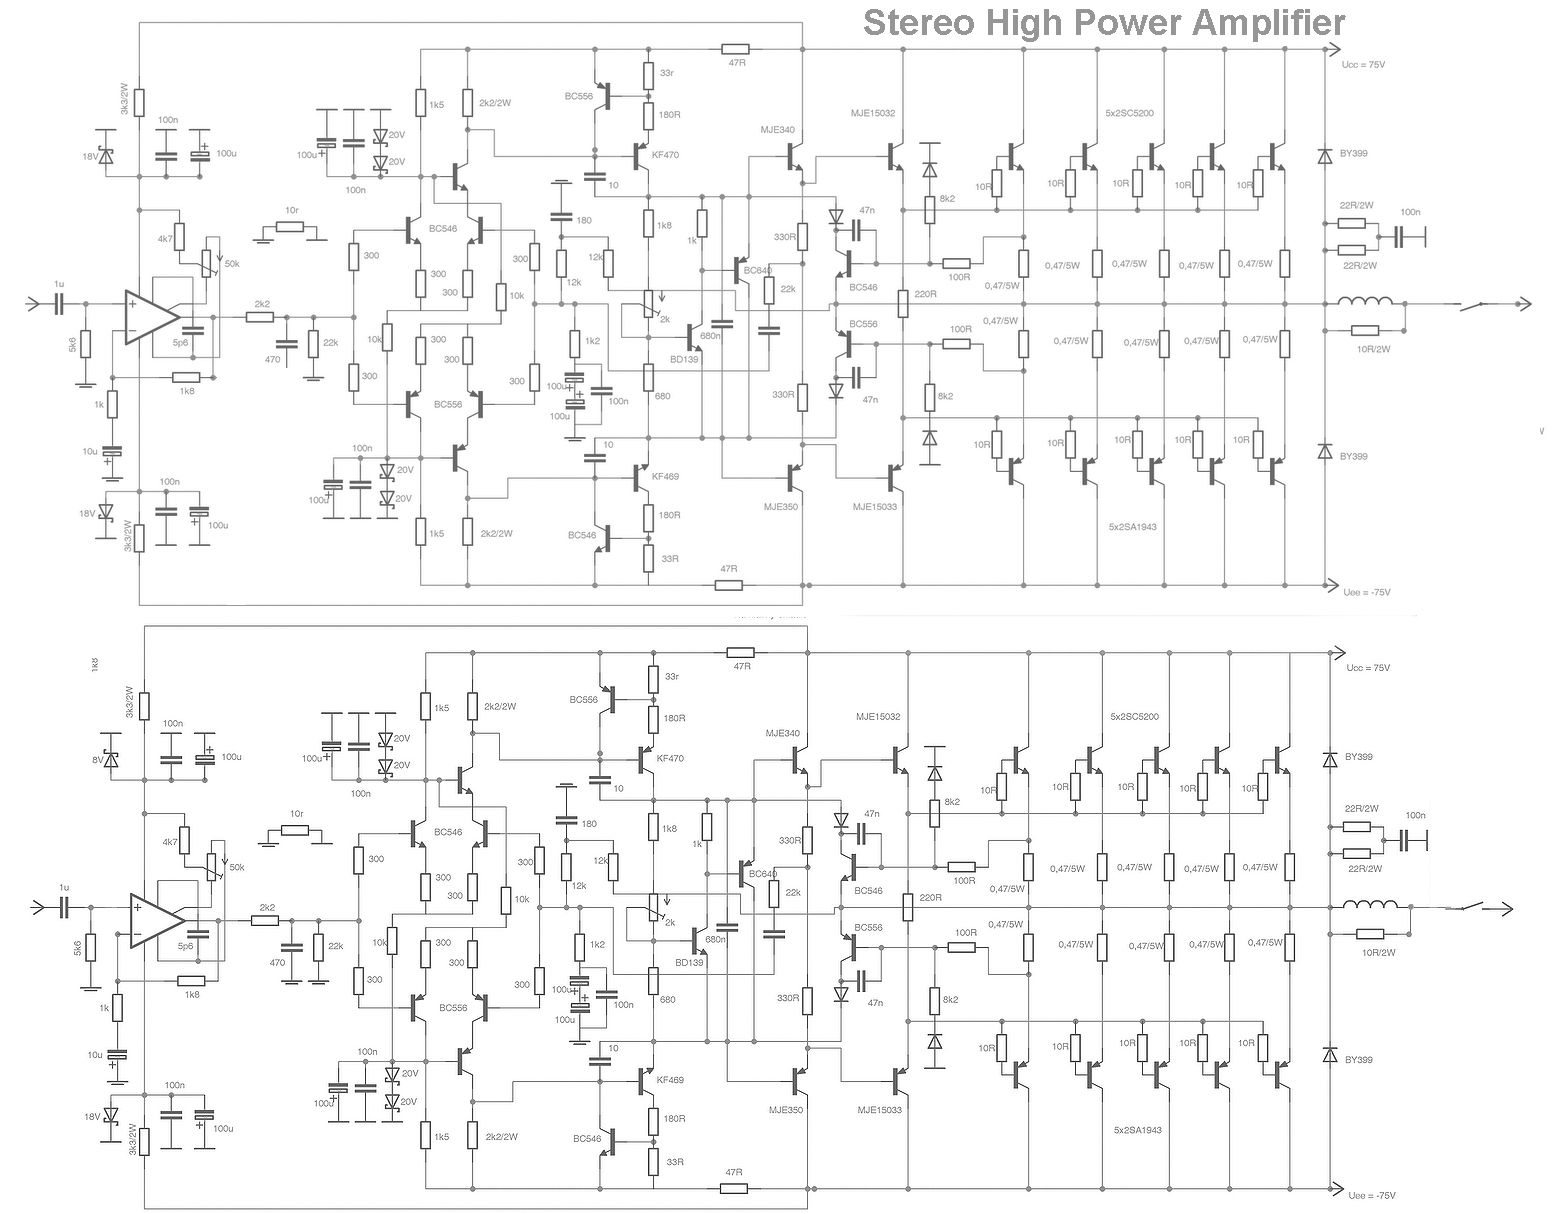 tda7293audiopoweramplifier100watts circuit power audio amplifier